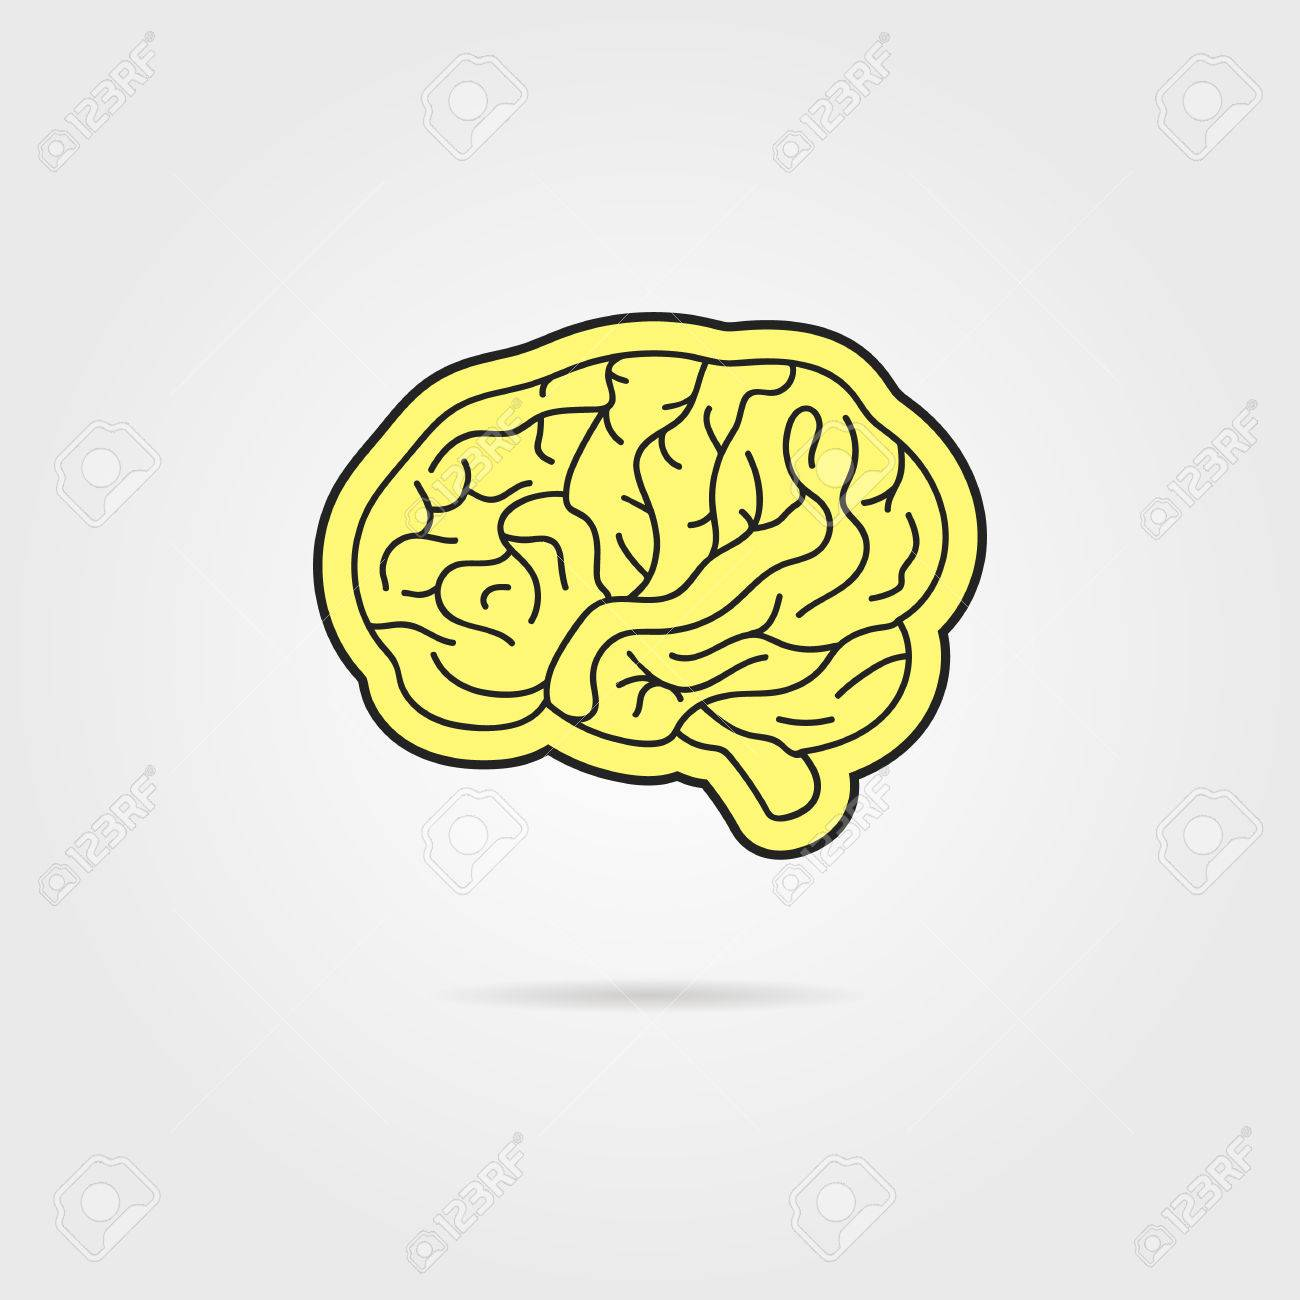 simple black and yellow brain  concept of thinking, artwork,